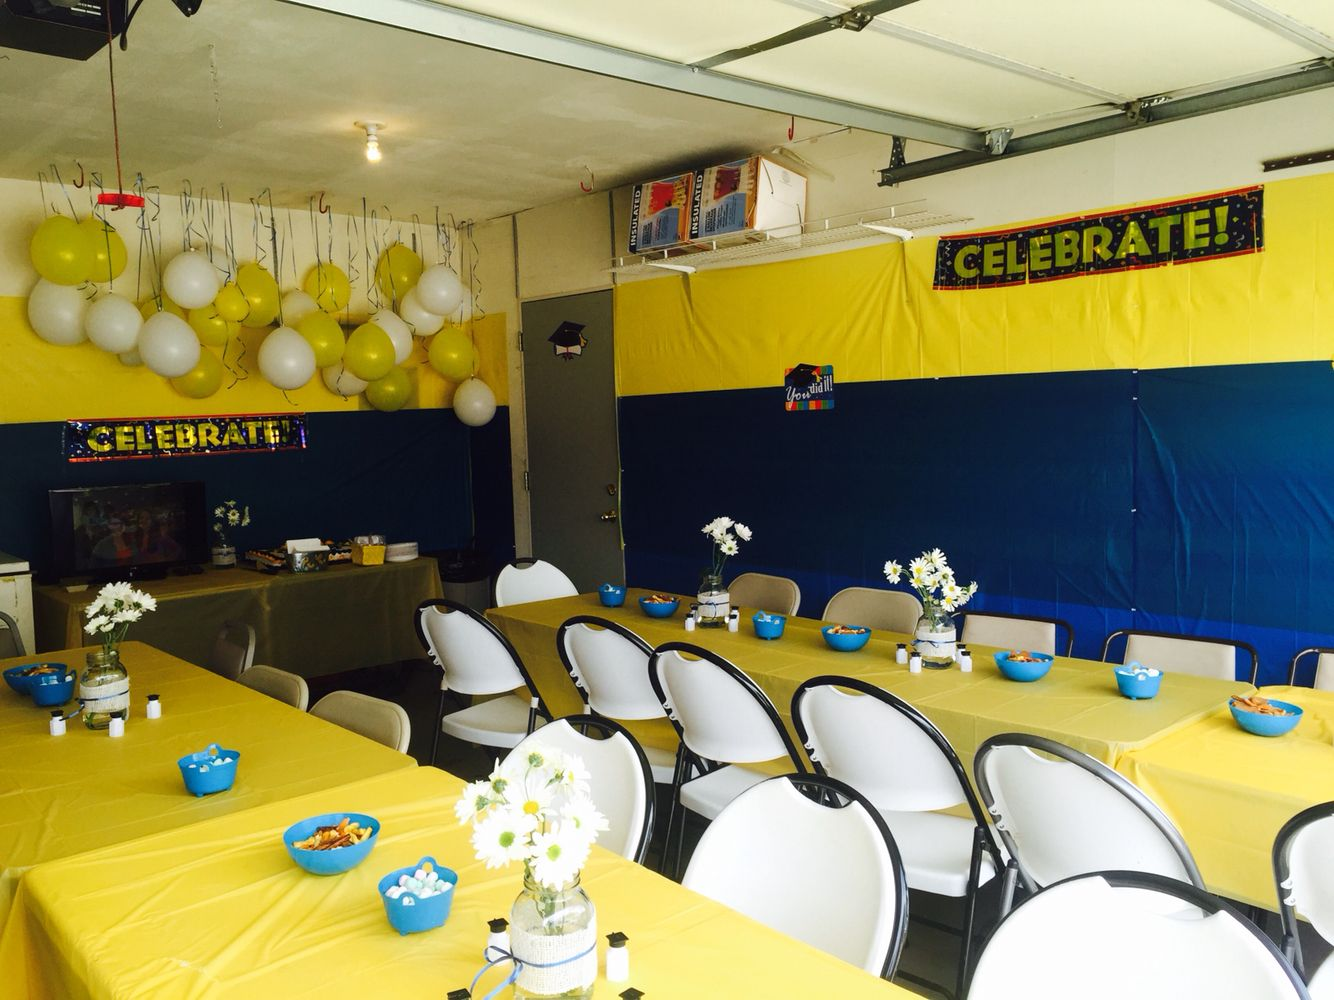 garage wall covering ideas for a party - Google Search | Halloween ...